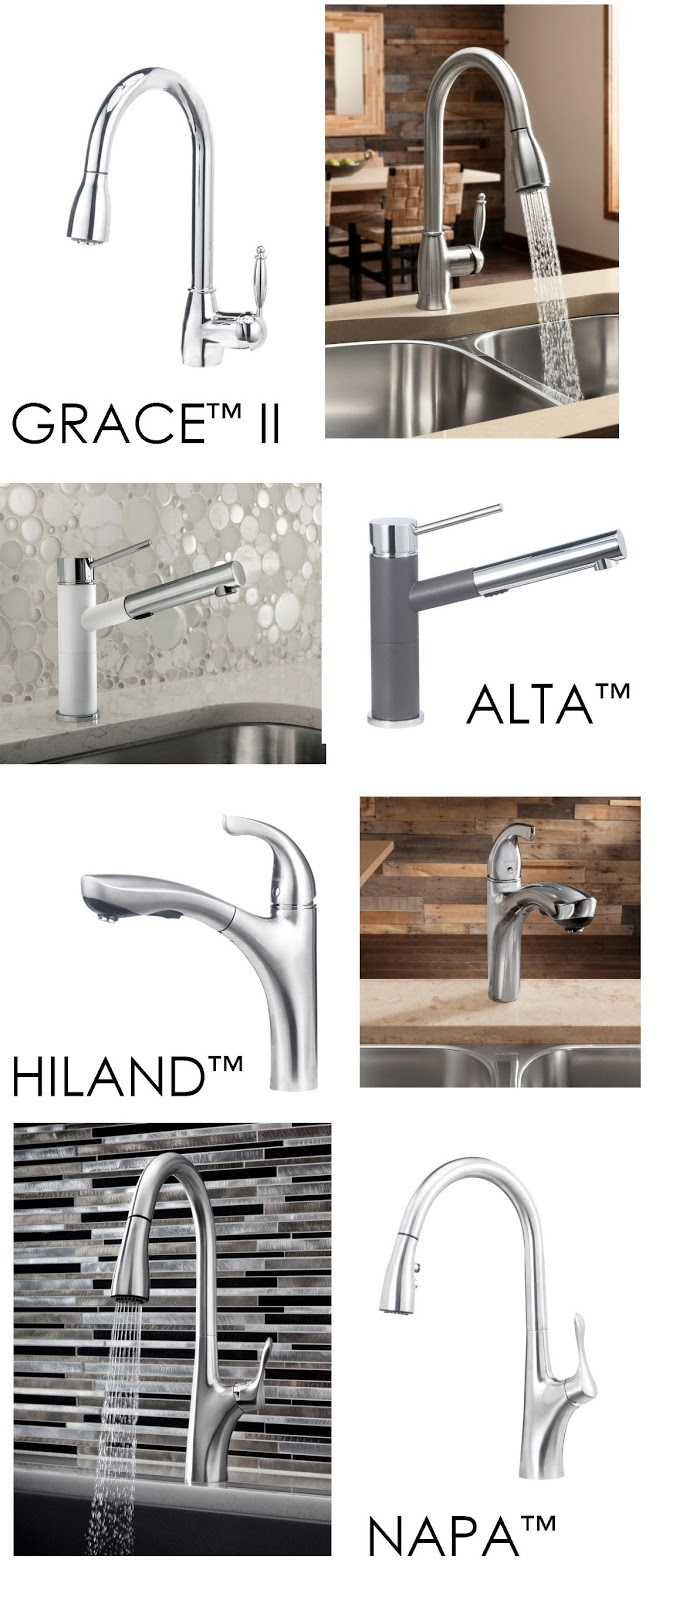 new @BLANCO America  faucets introduced @imm_cologne @livingkitchen #Blogtourcgn